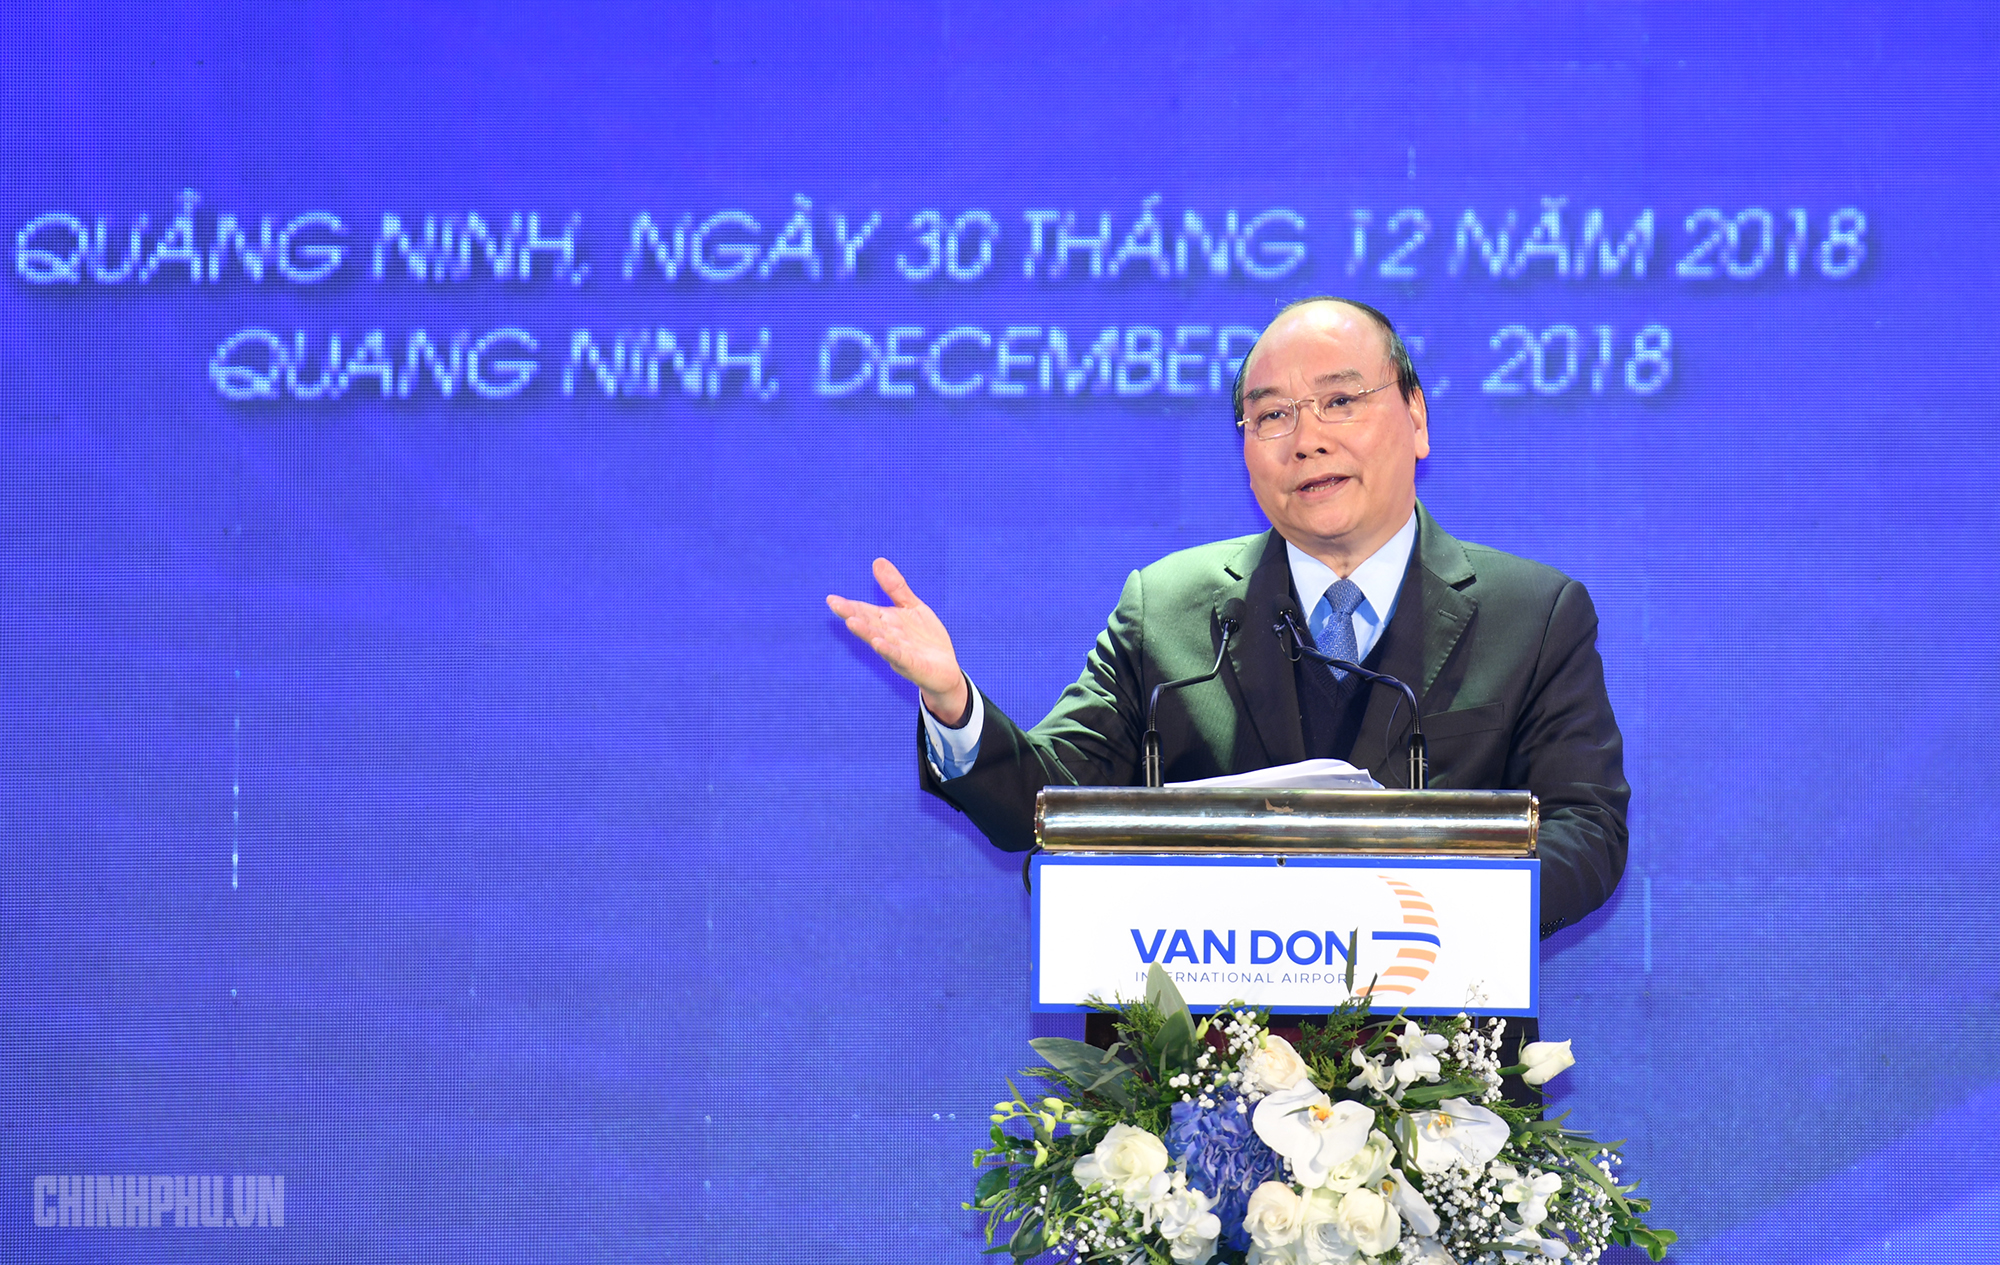 thu tuong ky vong 3 cong trinh lon dong gop vao khat vong phat trien